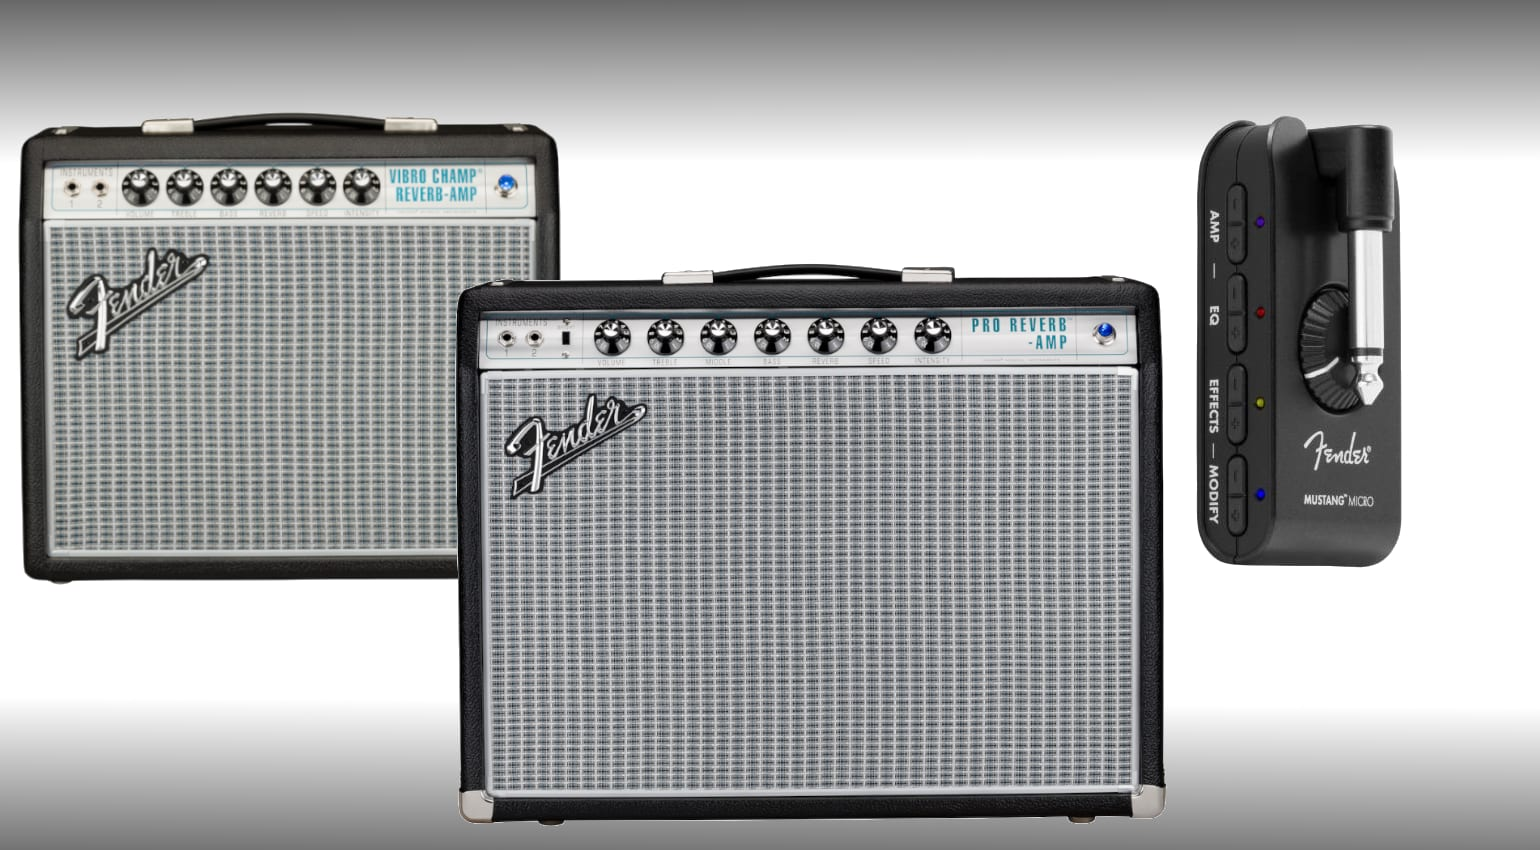 NAMM 2021: Fender drops two new '68 Custom amplifiers and a micro headphone  amp - gearnews.com